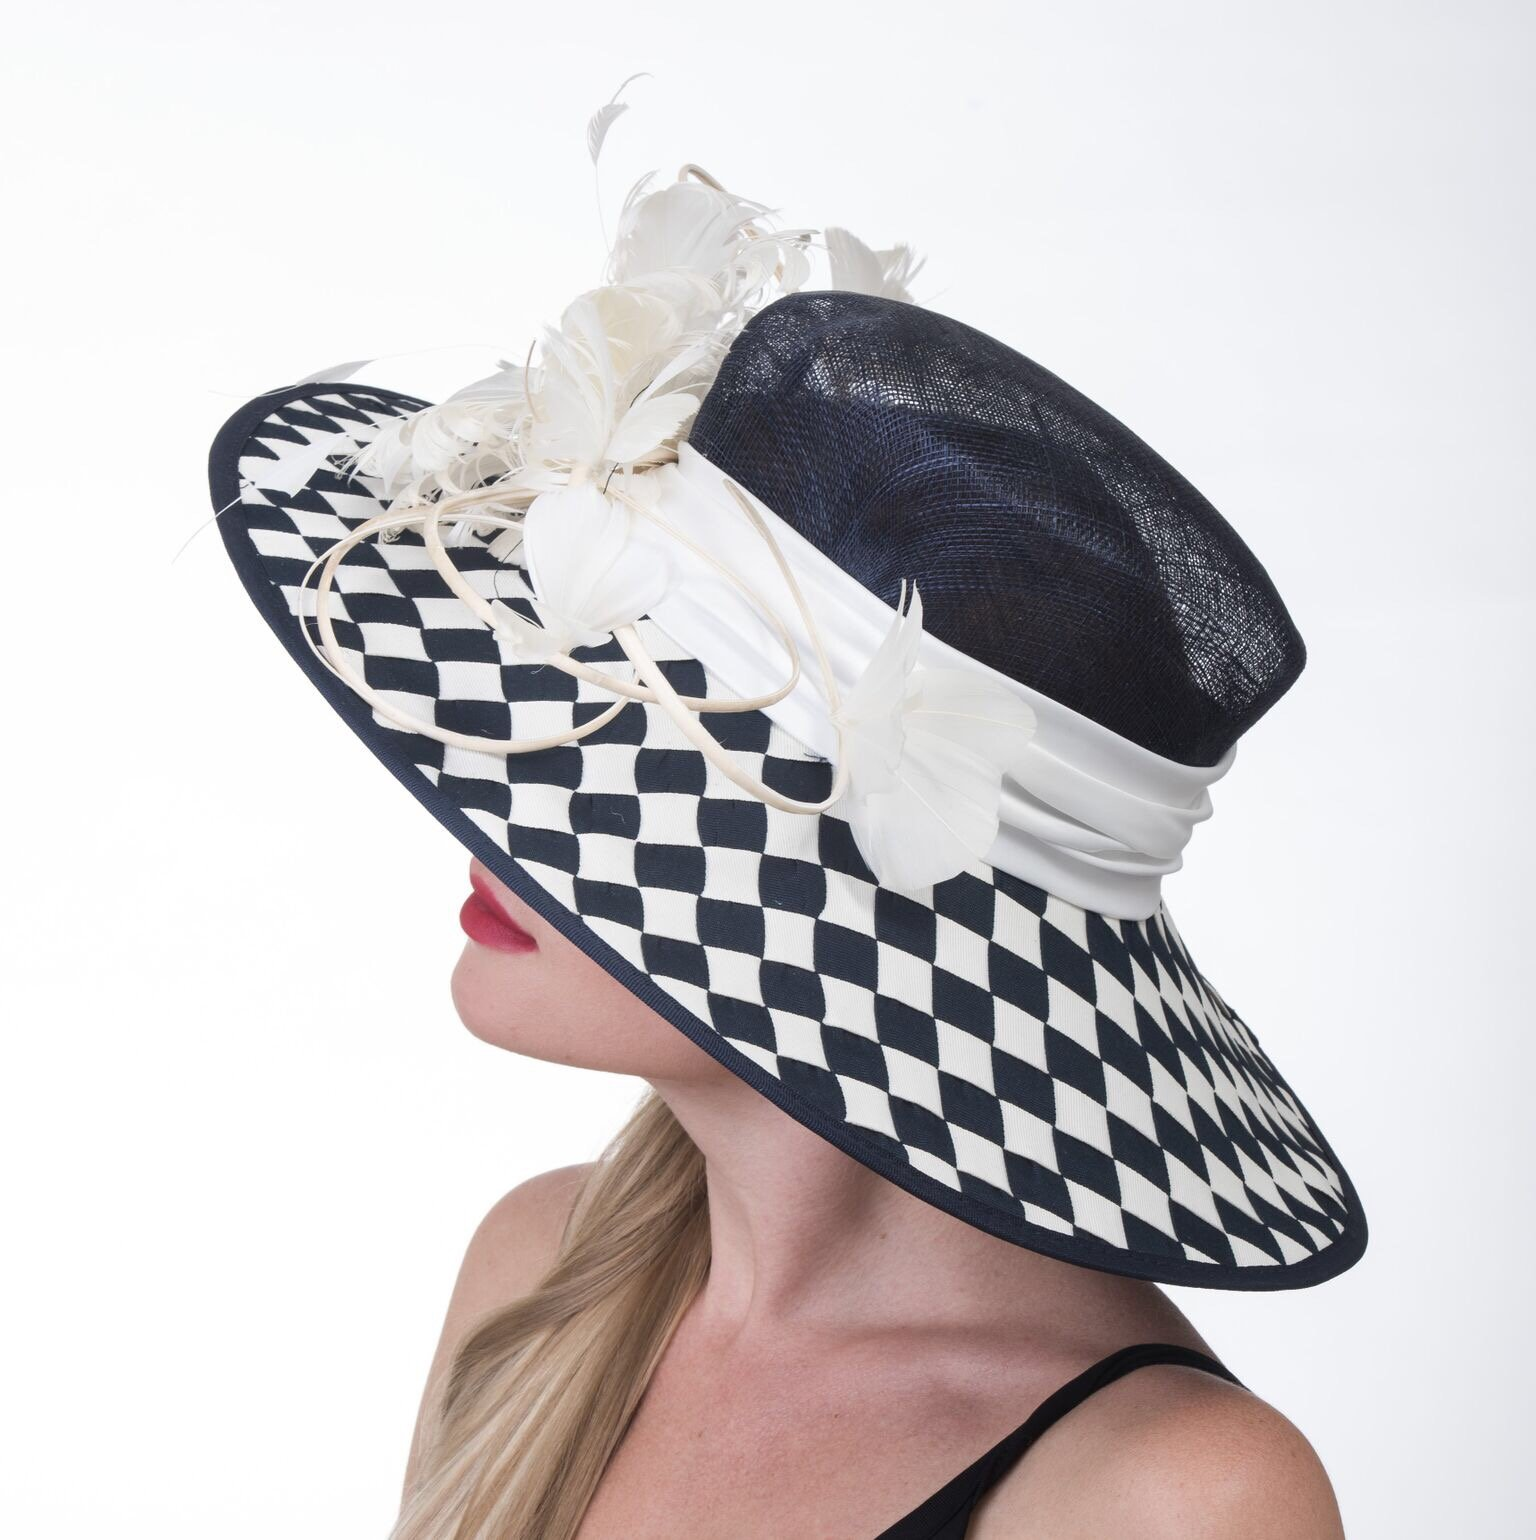 Gorgeous Wide Brim Sinamay Floral Feathers Derby Dress Hat Navy Blue w White by ray&daniel (Image #3)